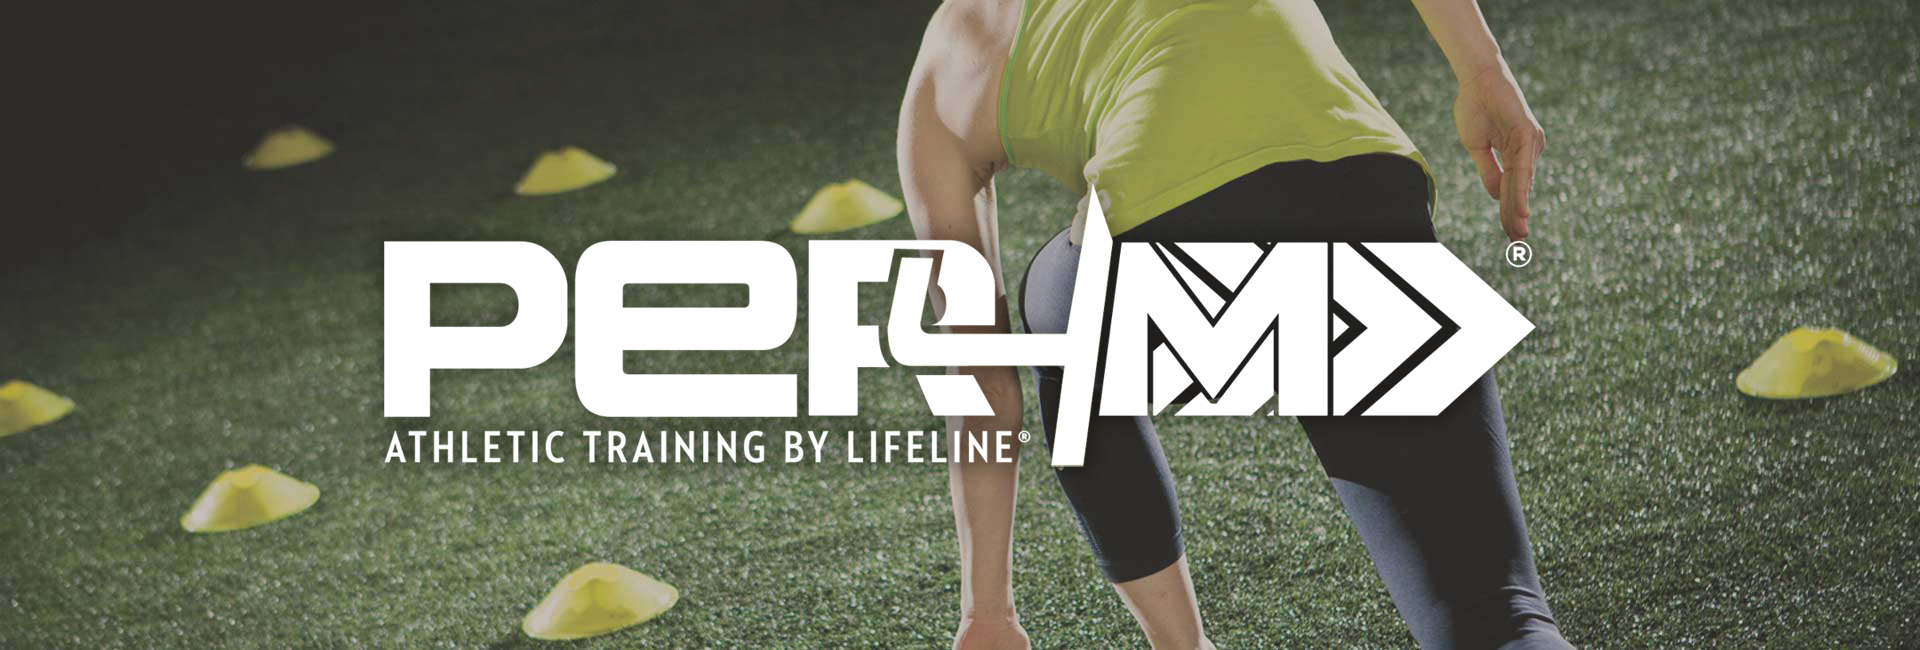 Reach your next level of performance with equipment and tools designed to build your speed, agility, quickness and power. Get ready to rocket with athletic training rewards and employee gifts by Per4M.